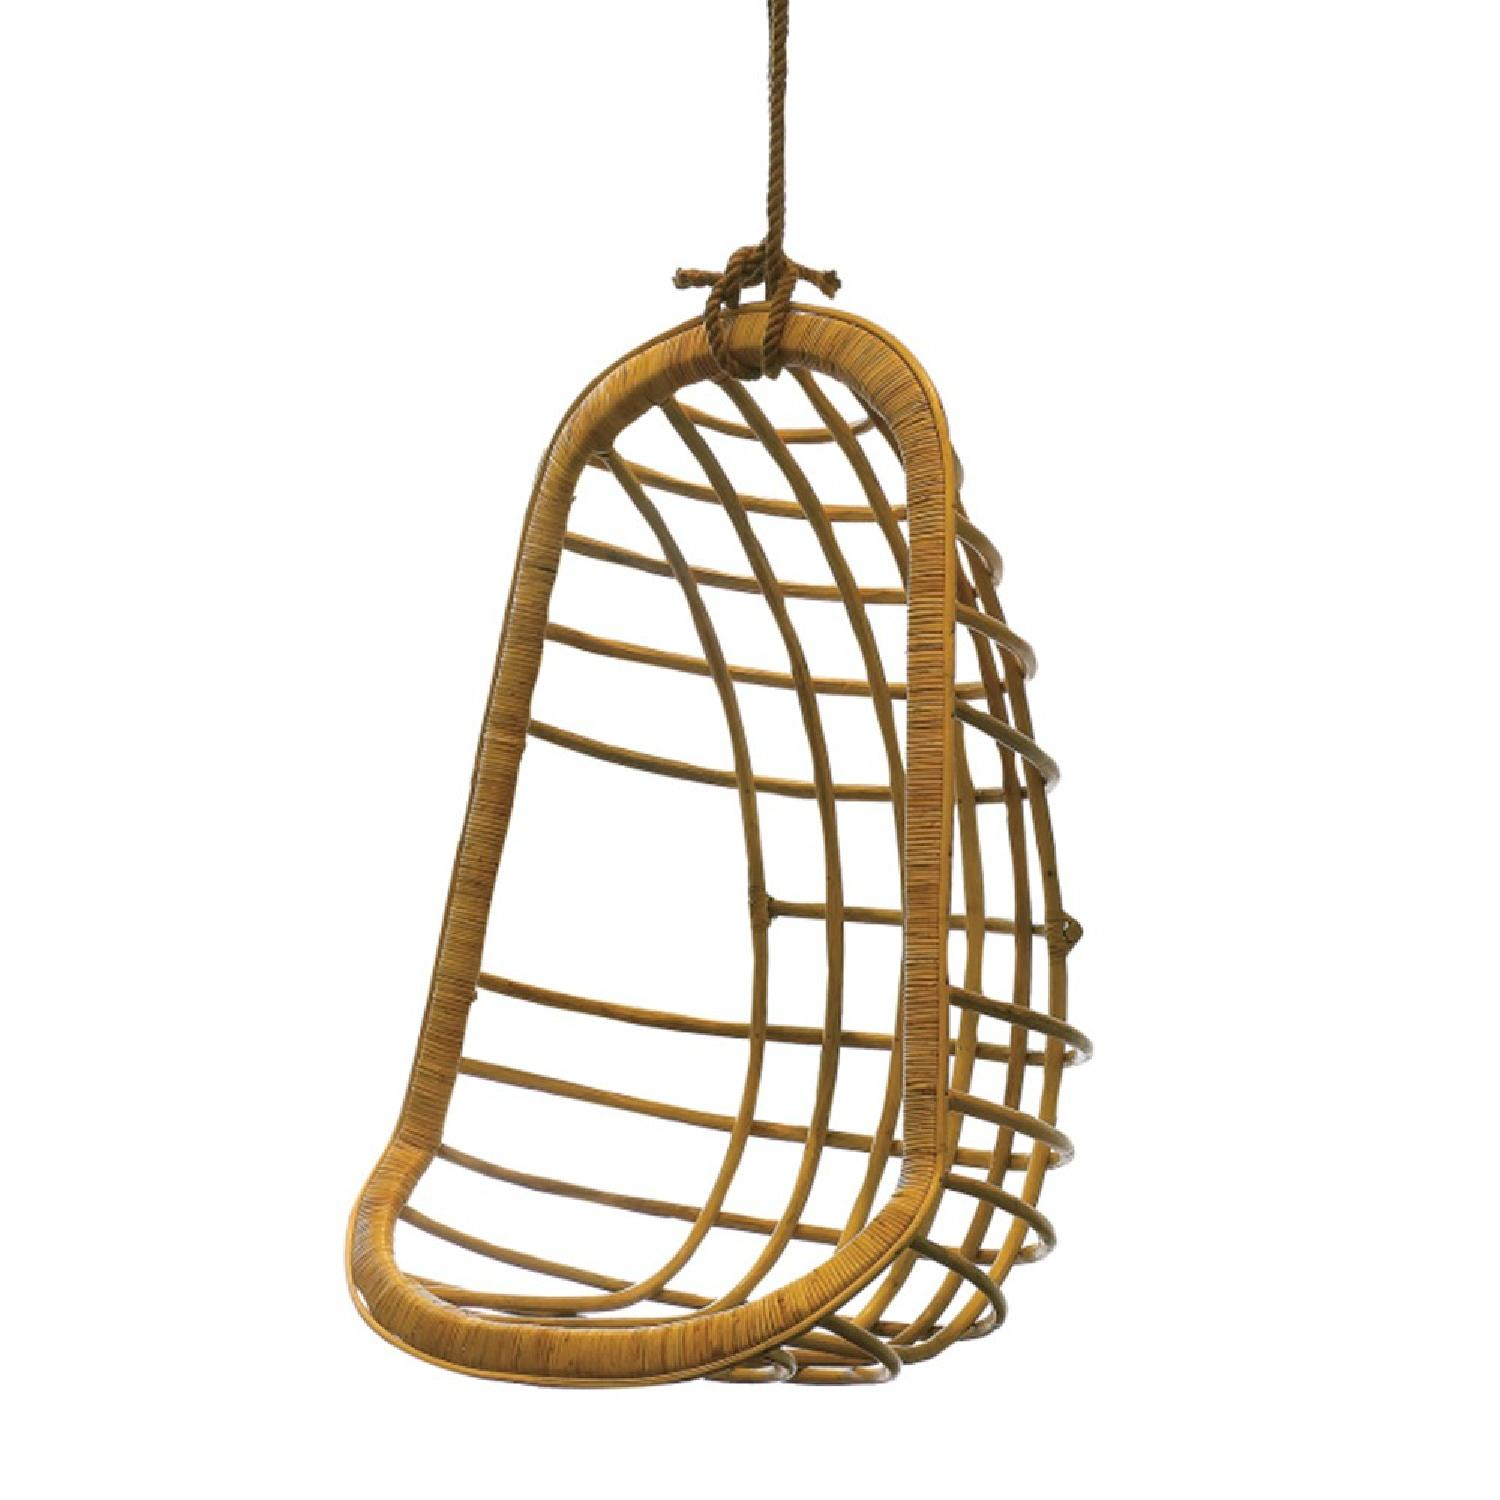 Twos Company Hanging Rattan Chair - image-0